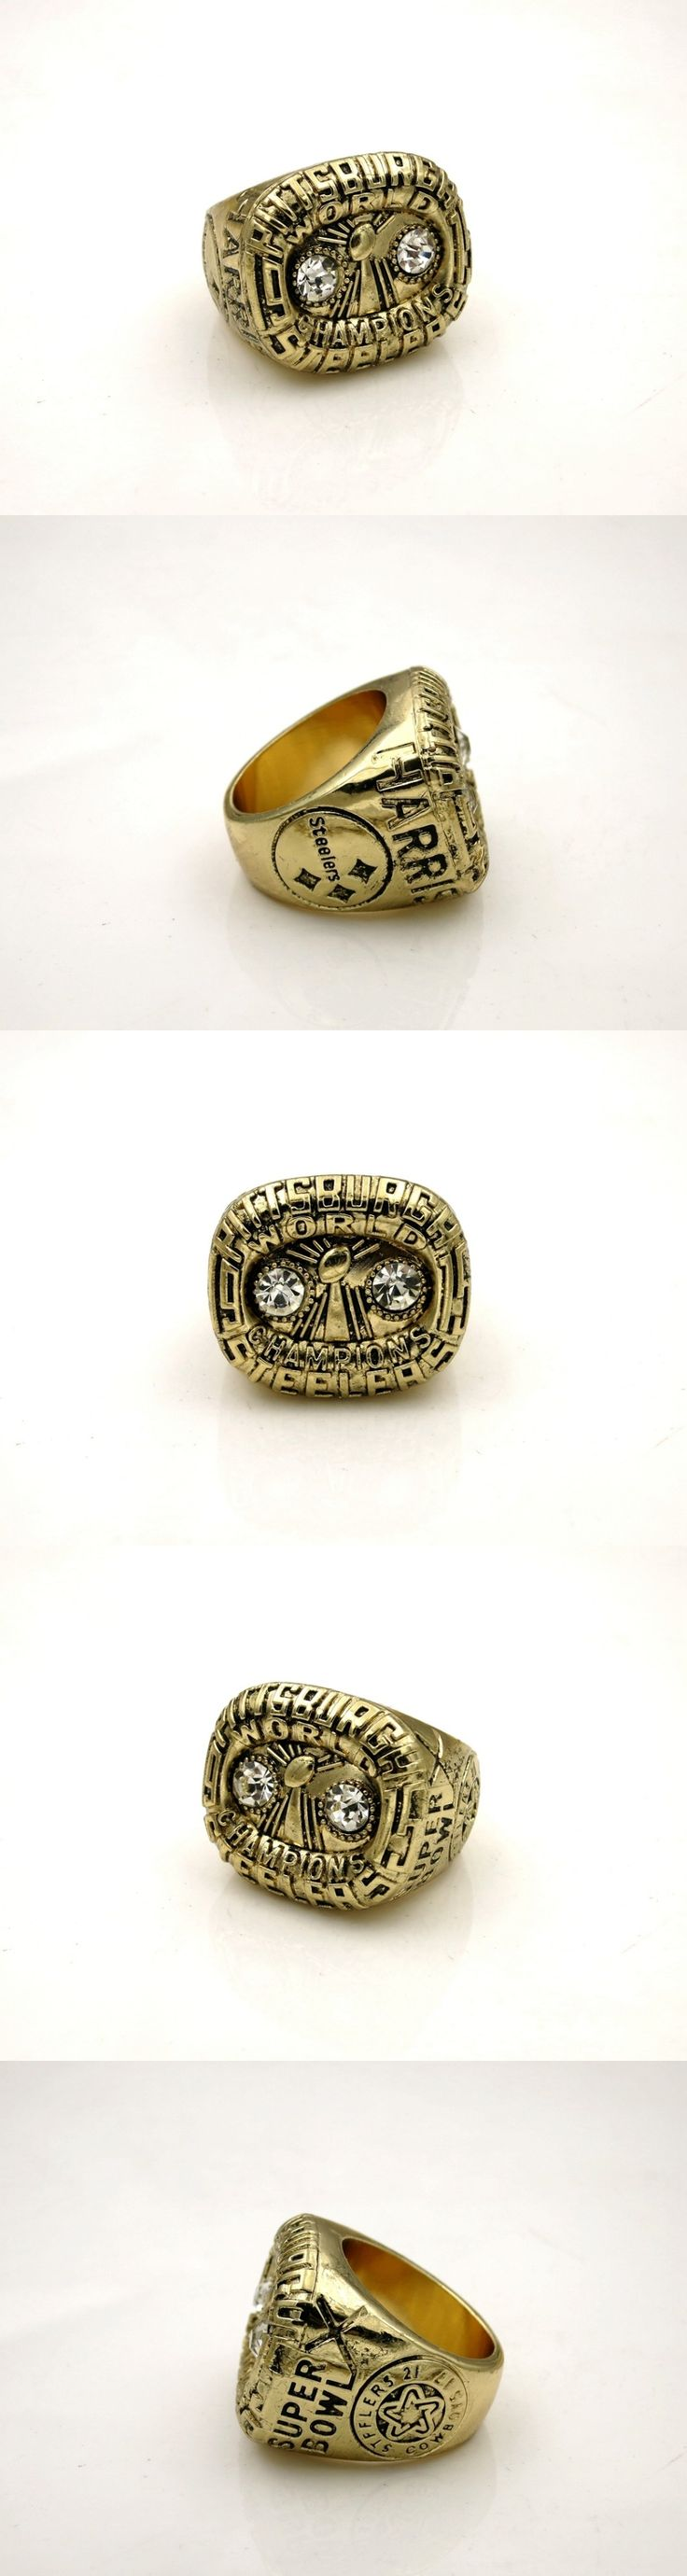 1975 Pittsburgh Steelers World Championship Ring SA001